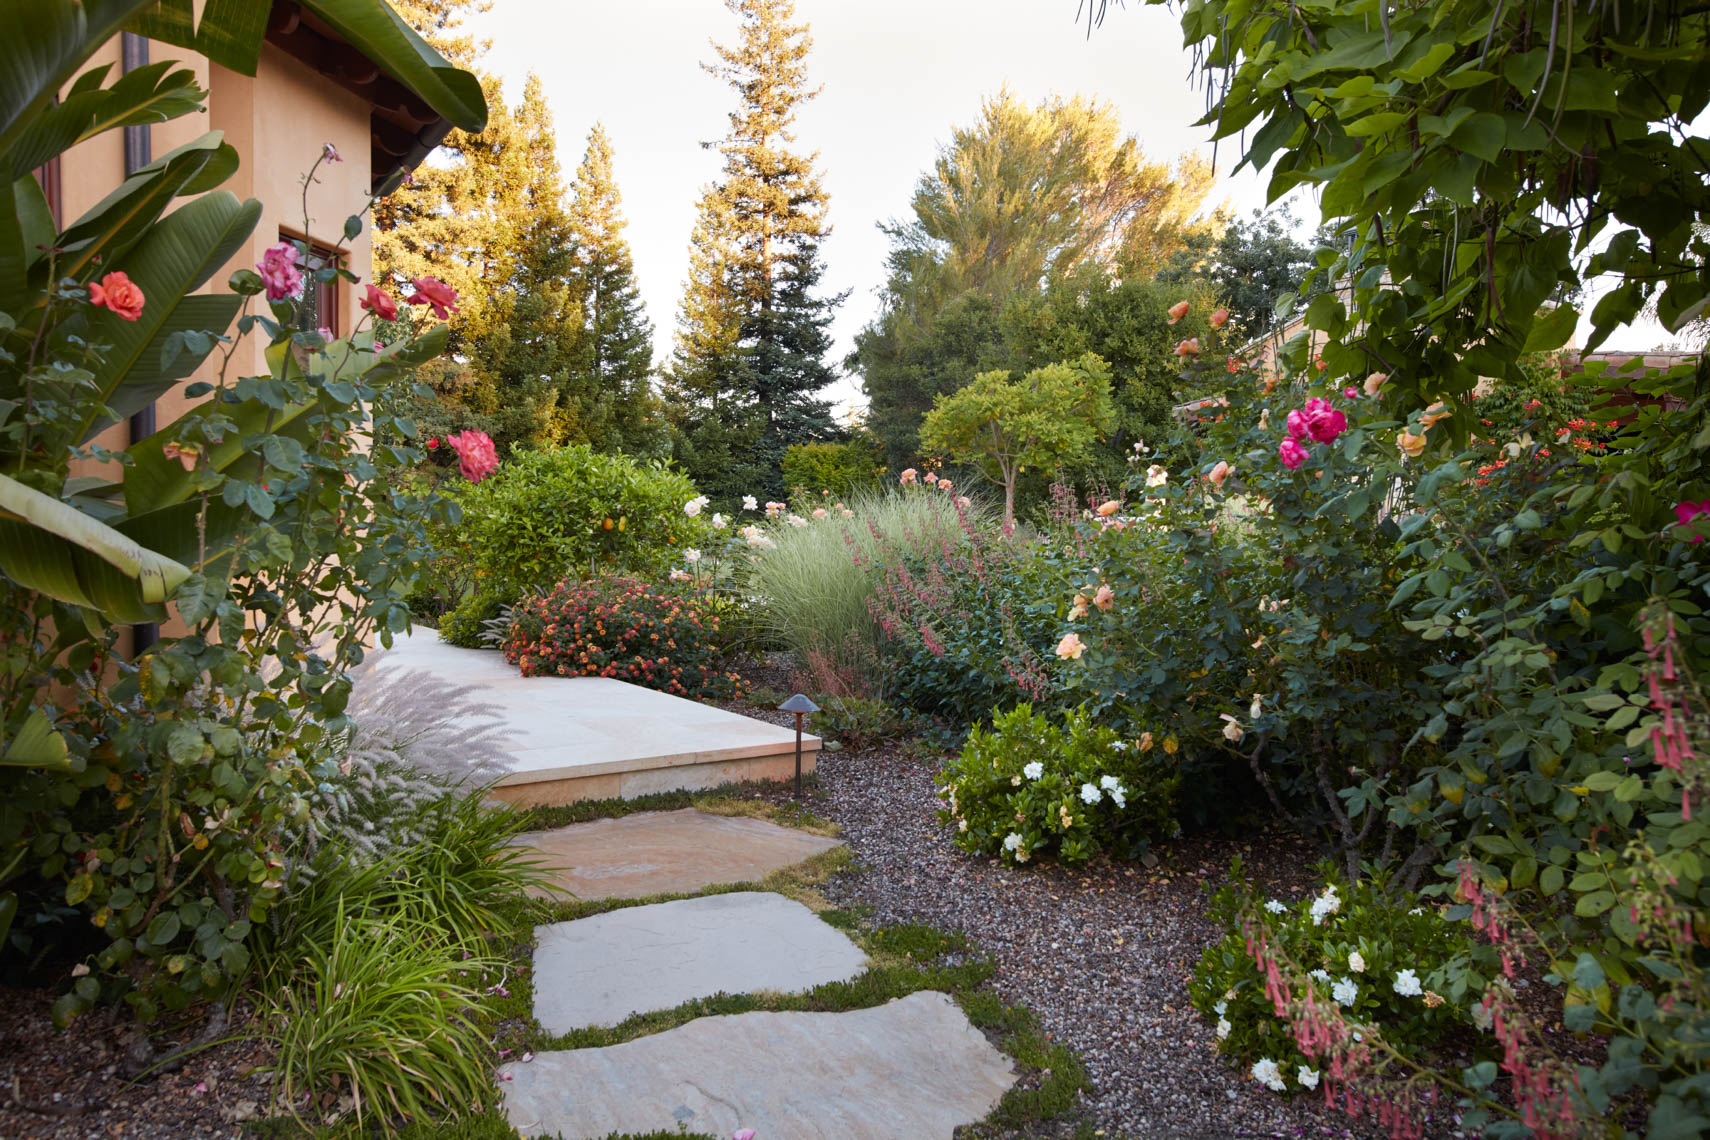 Curving garden path in yard with roses and green plants San Francisco lifestyle photographer